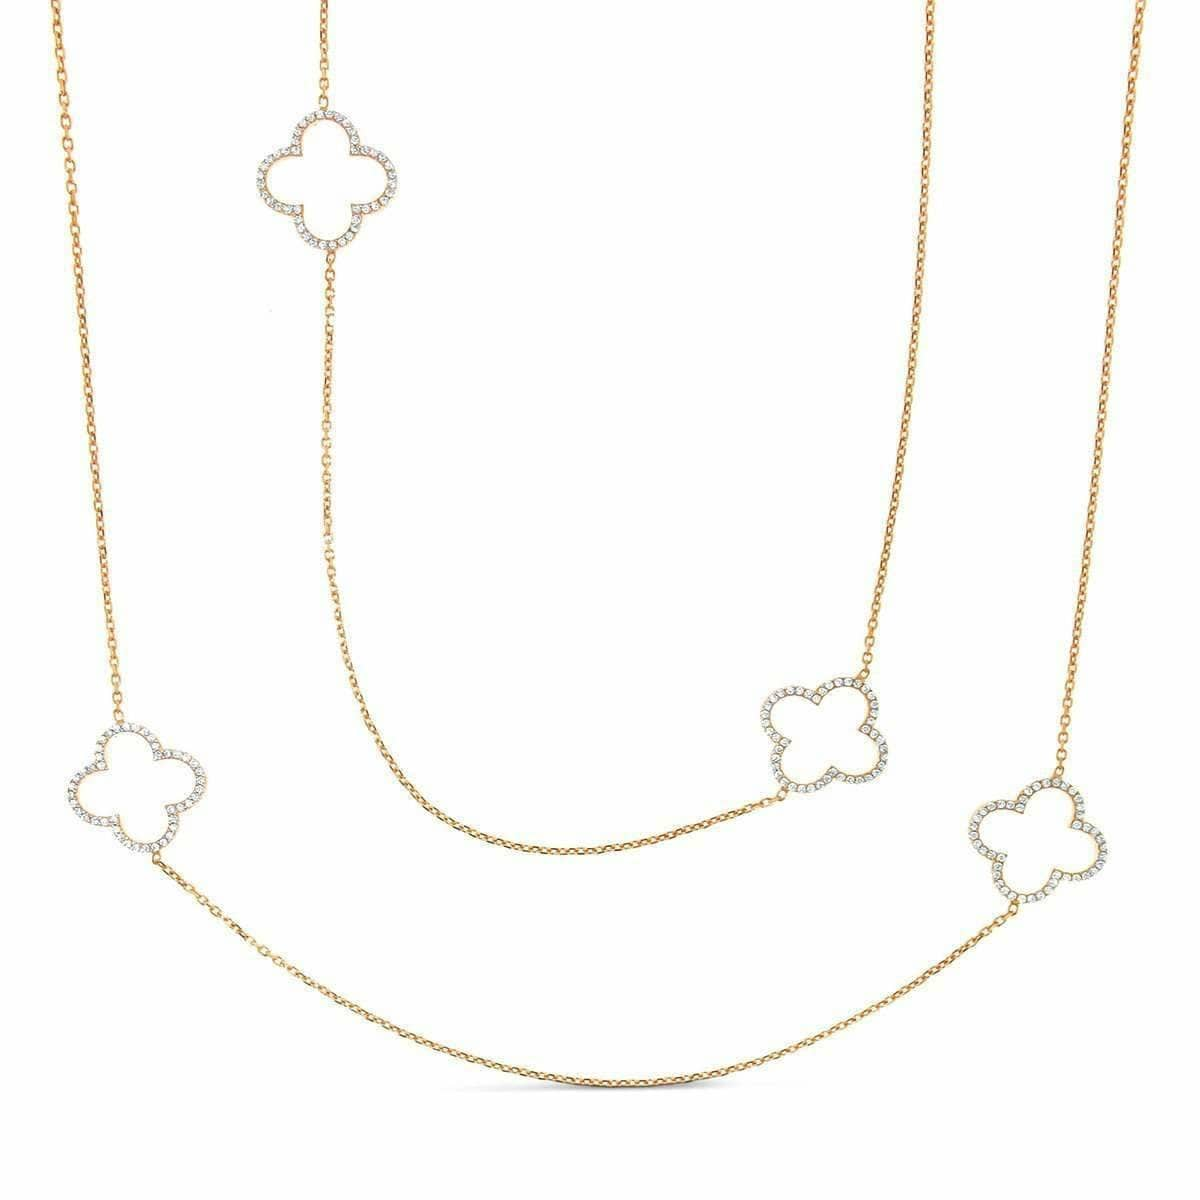 Rhodium Plated Sterling Silver Long Clover Necklace